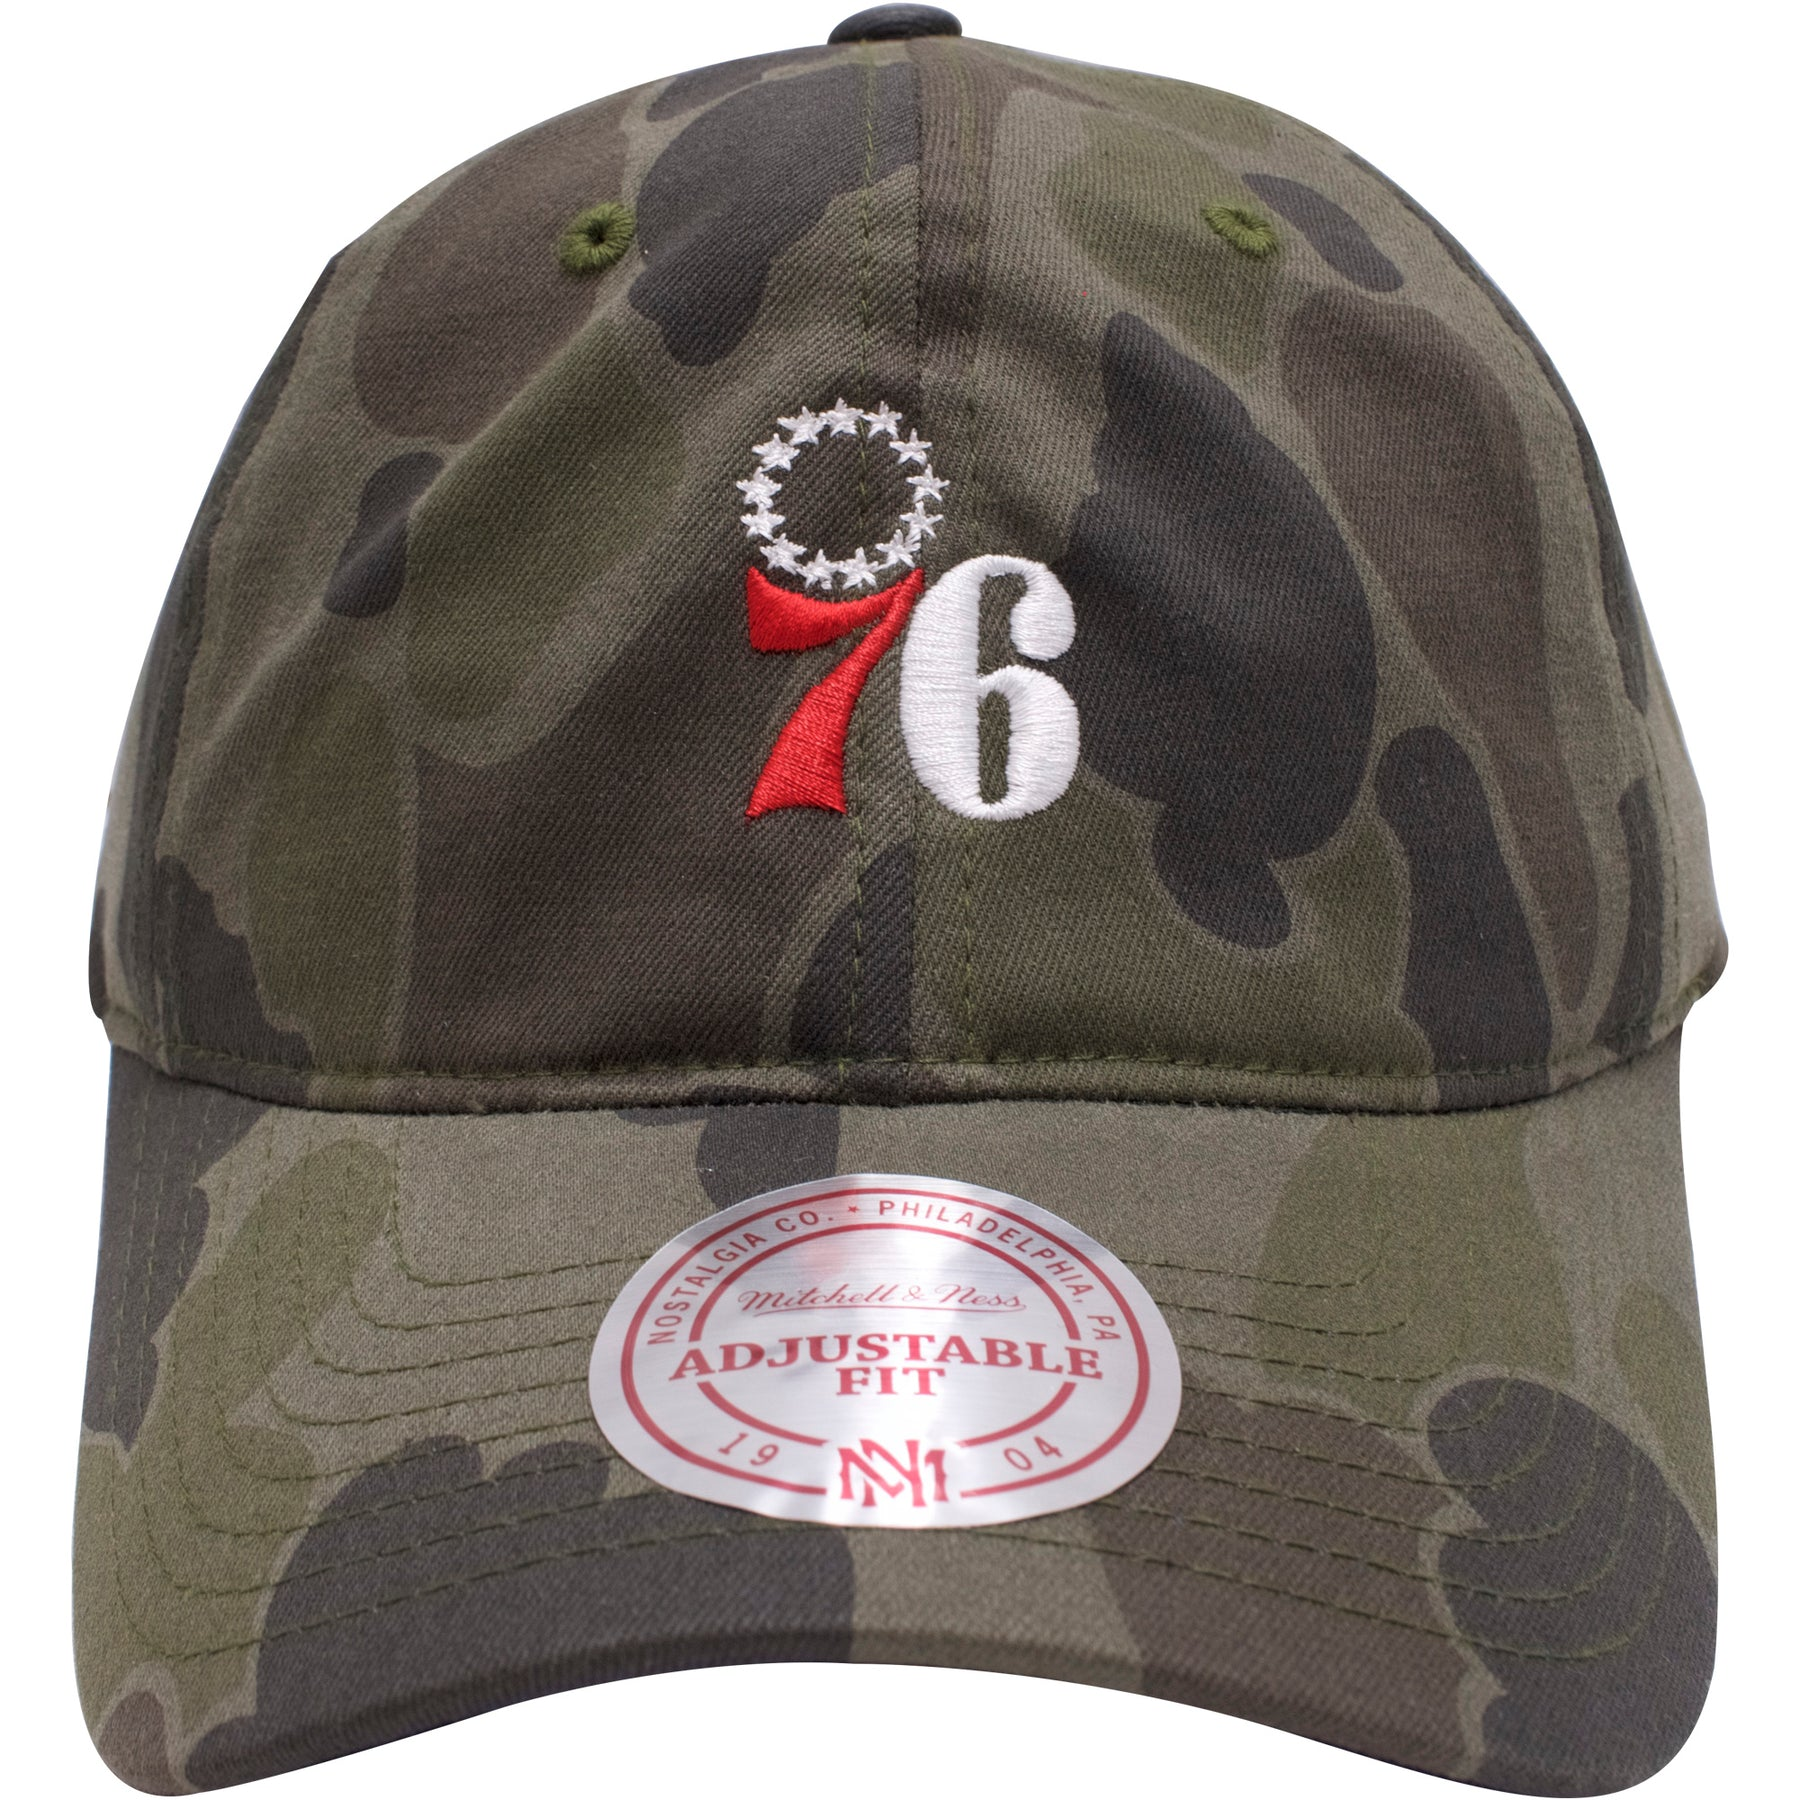 3c8e37217a9 the philadelphia 76ers woodland camouflage dad hat has a soft crown and a  bent brim